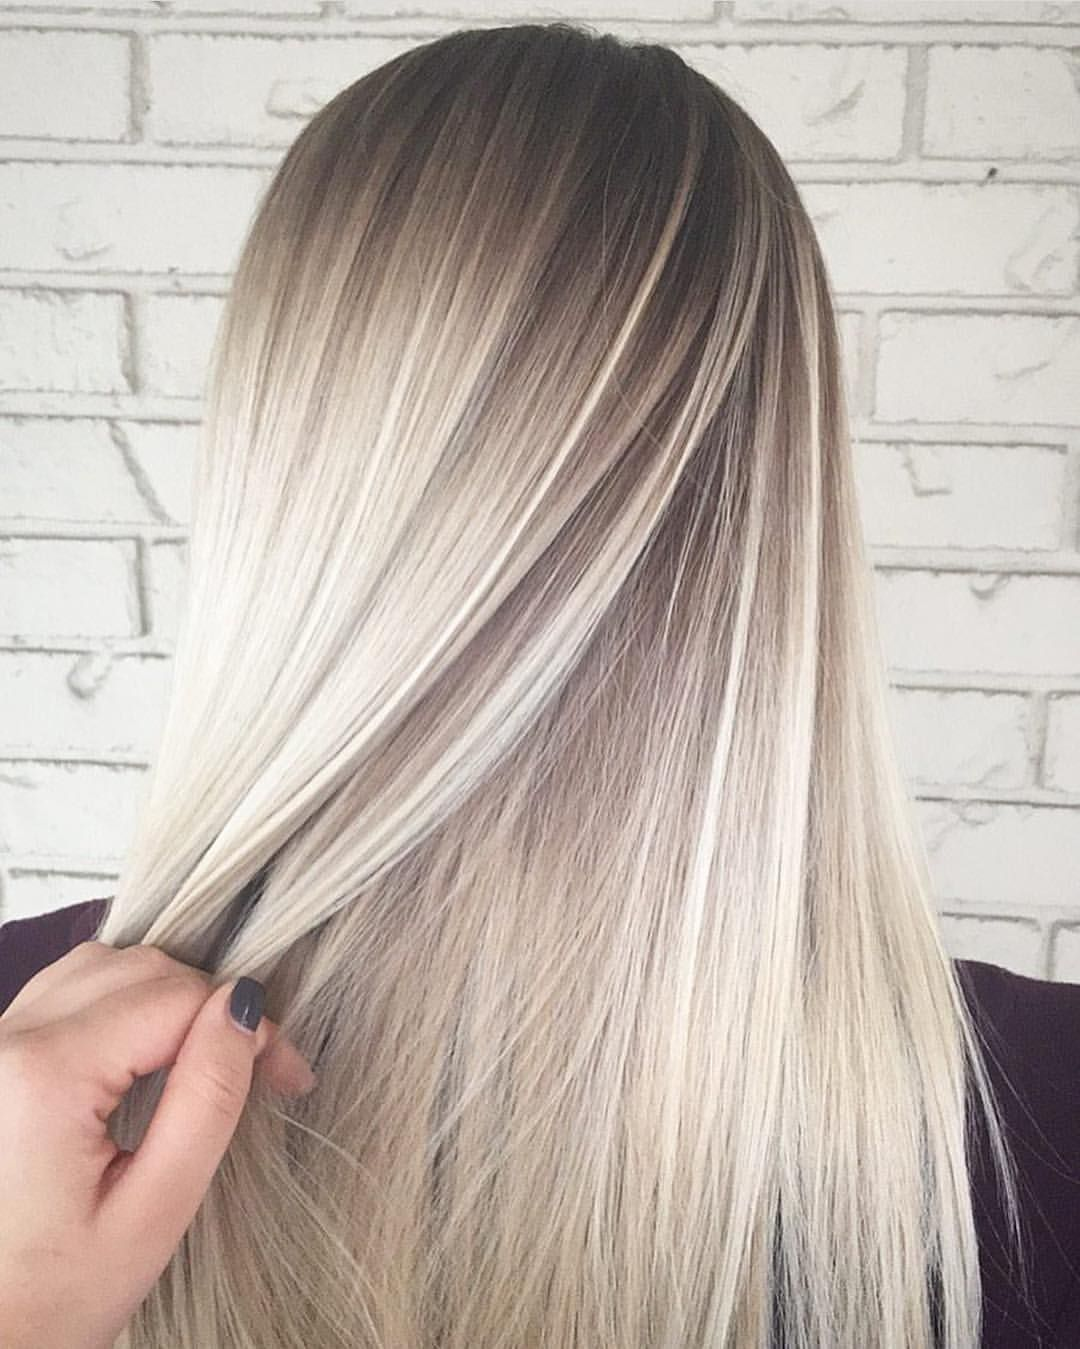 26+ Shadow root ash blonde ideas in 2021